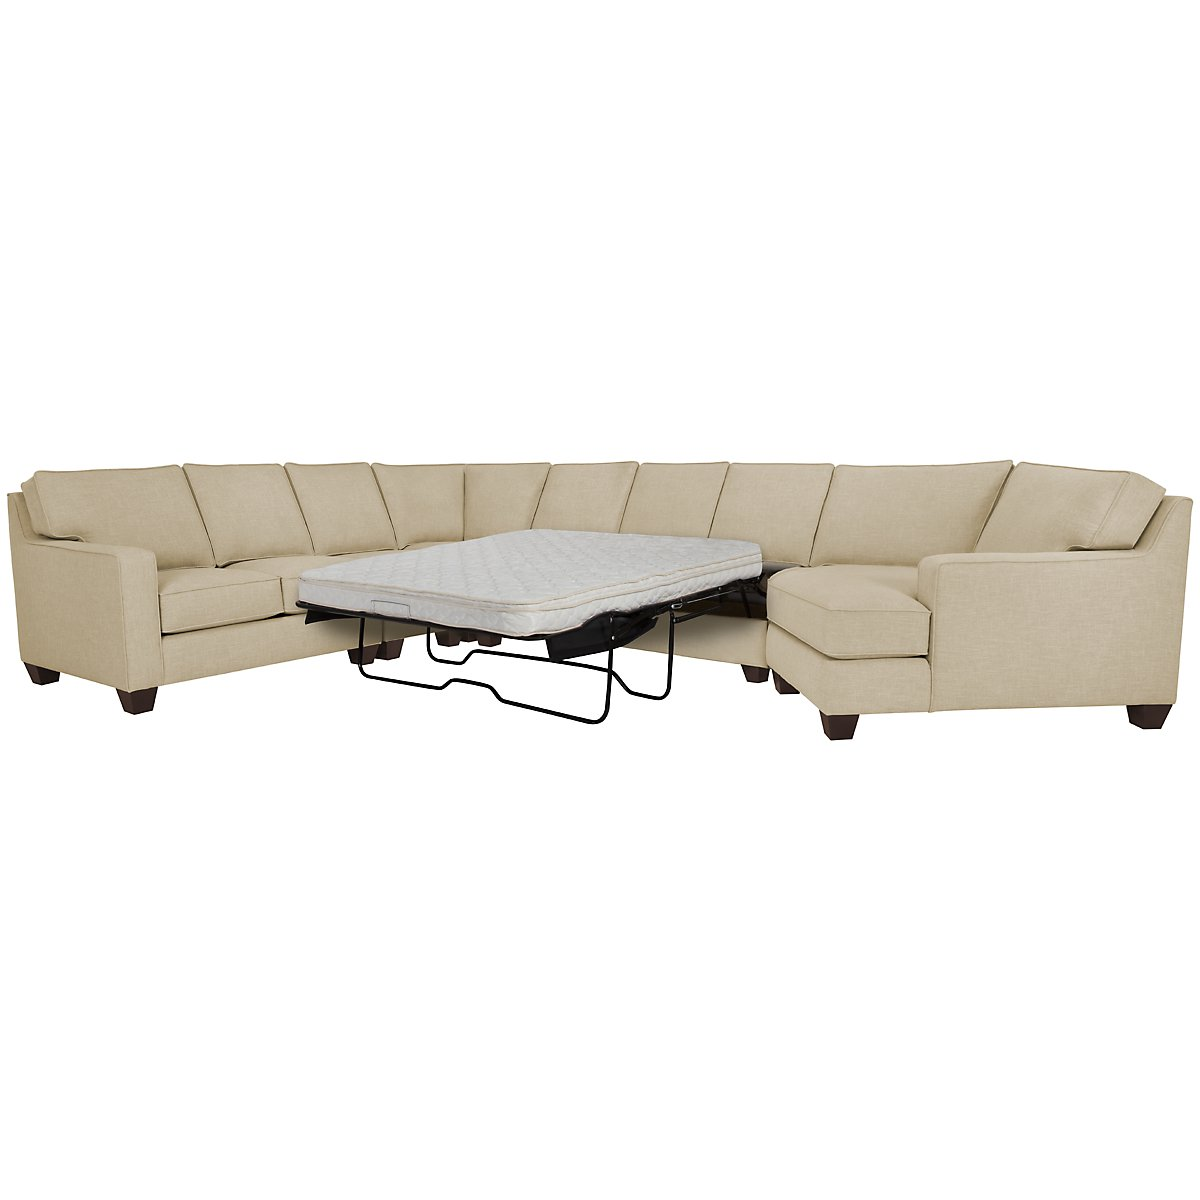 York Beige Fabric Large Right Cuddler Innerspring Sleeper Sectional